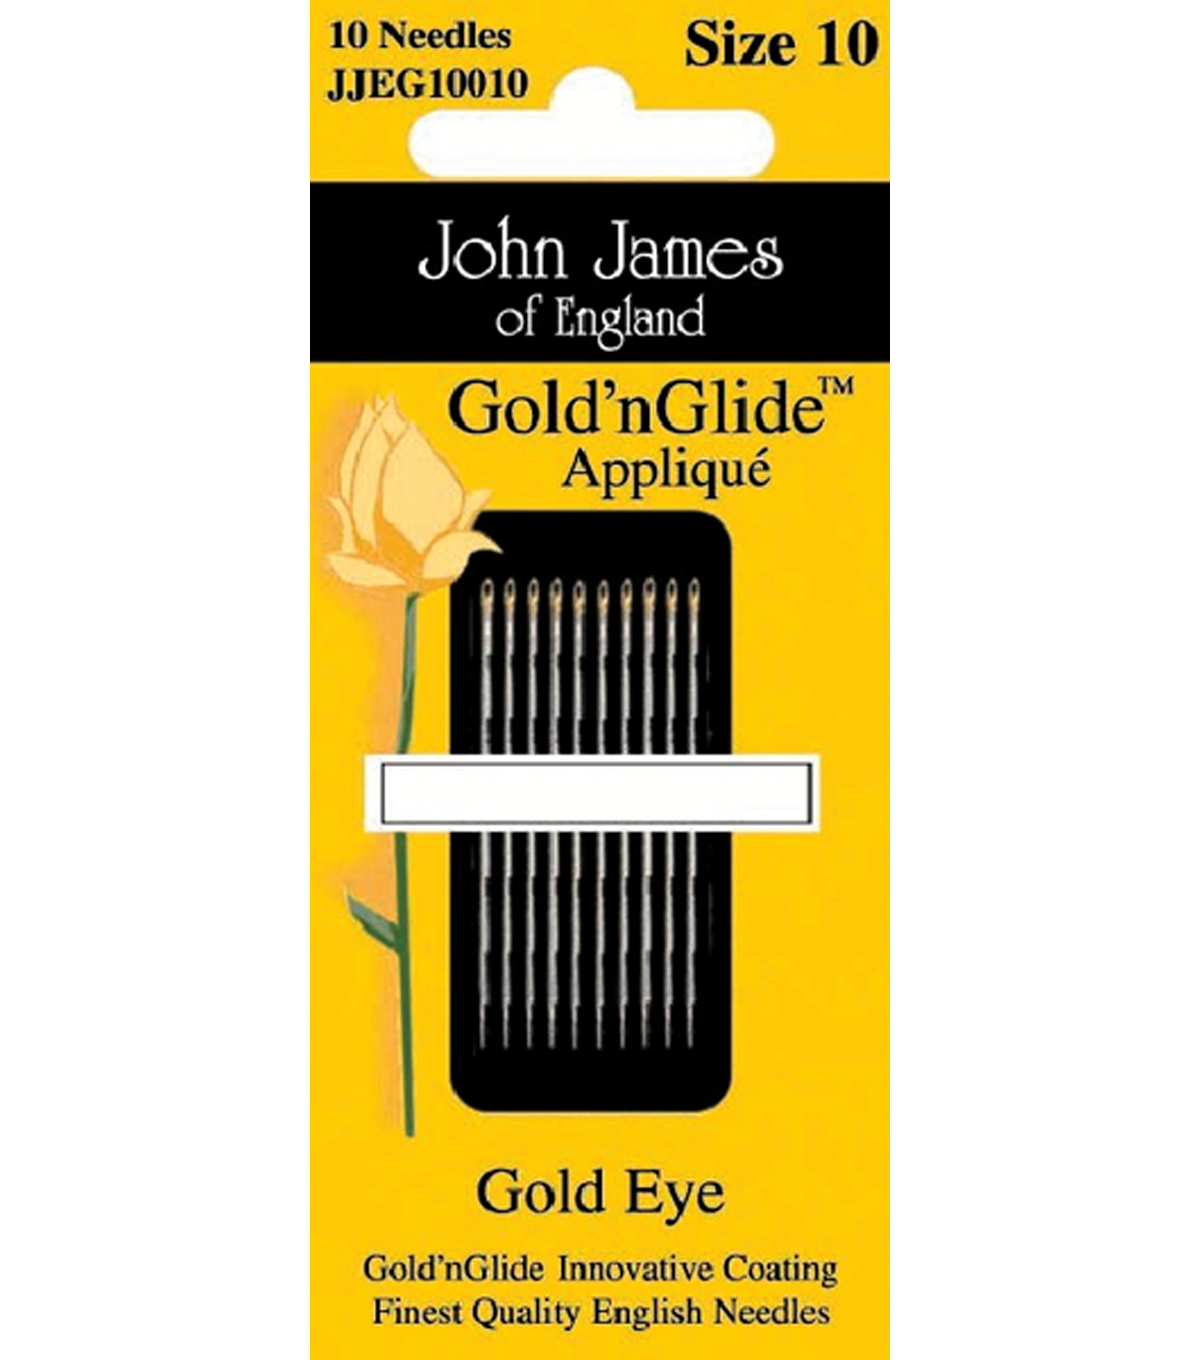 John James Gold\u0027n Glide Applique Needles